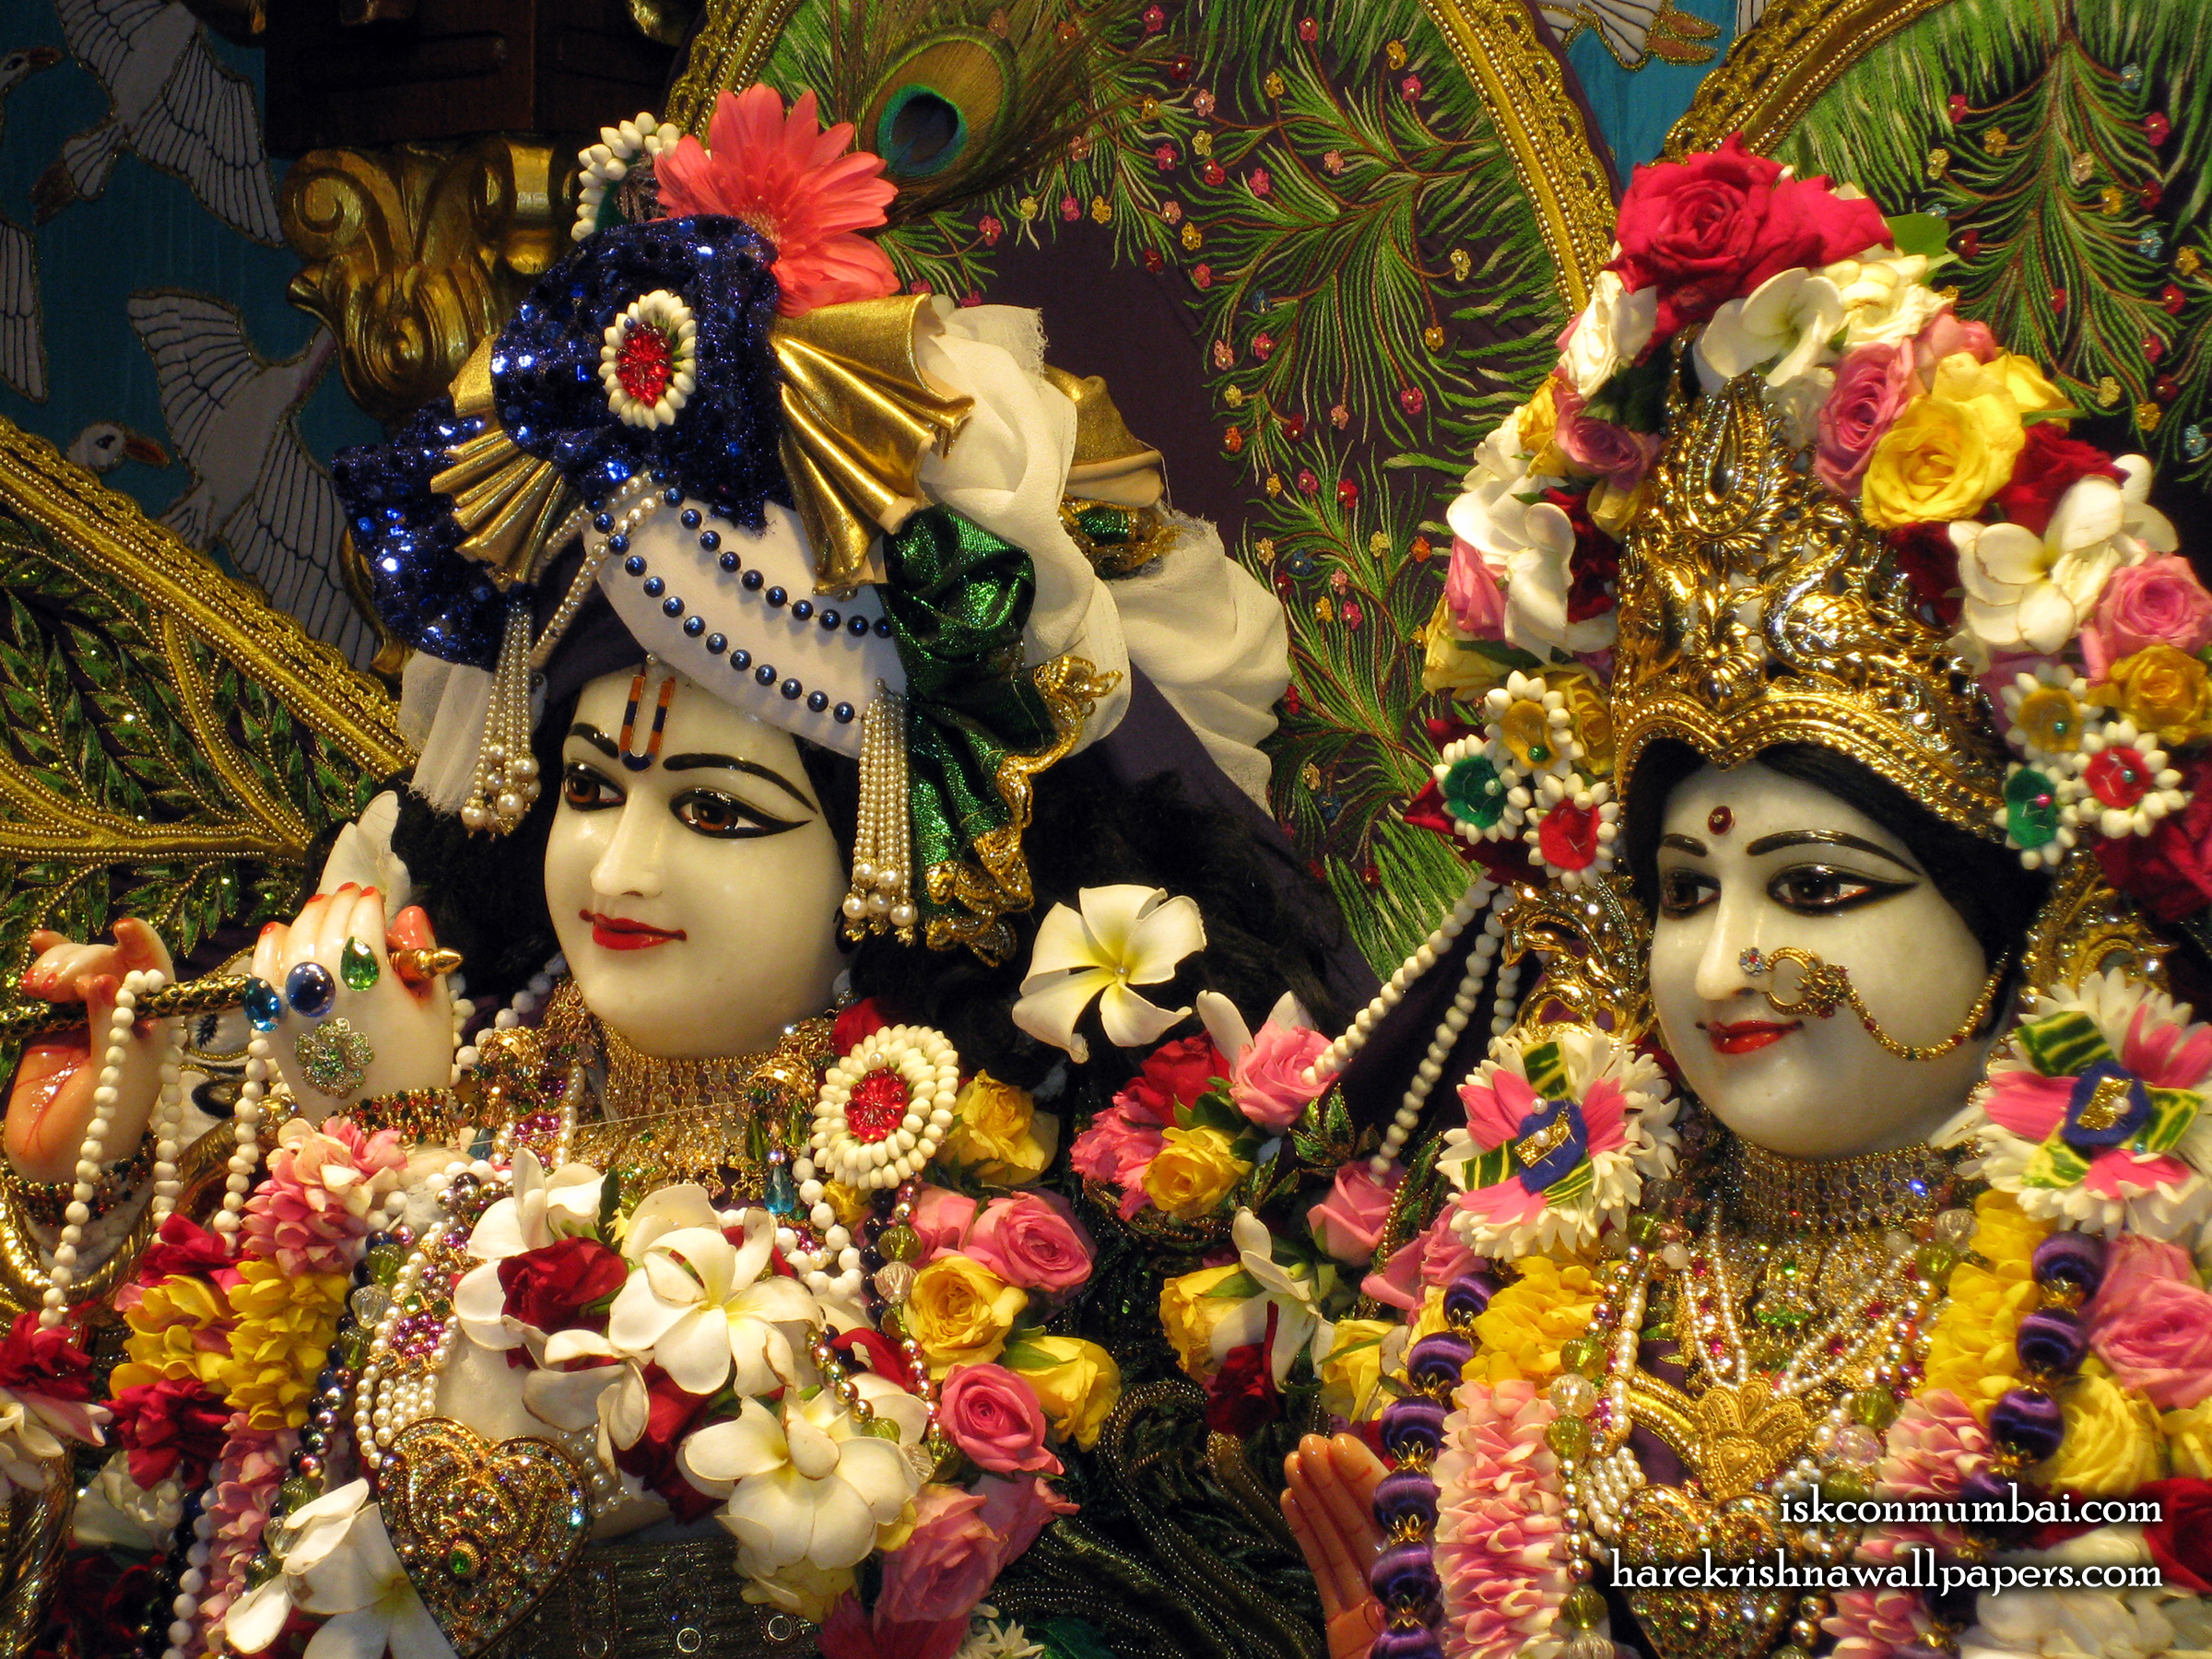 Sri Sri Radha Rasabihari Close up Wallpaper (012) Size 2400x1800 Download